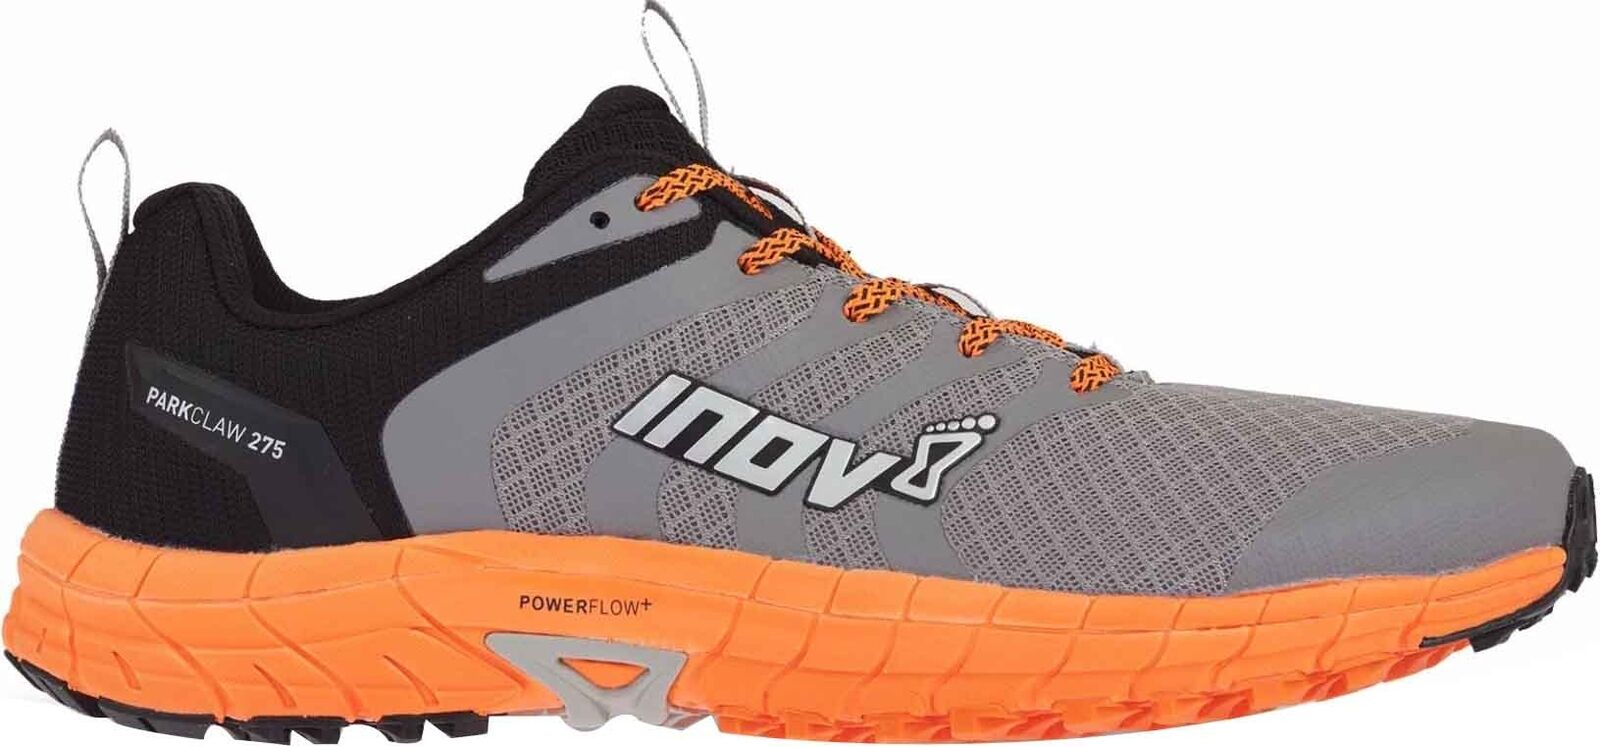 Inov 8 parkclaw 275 Para Hombre Trail Running Zapatos-gris